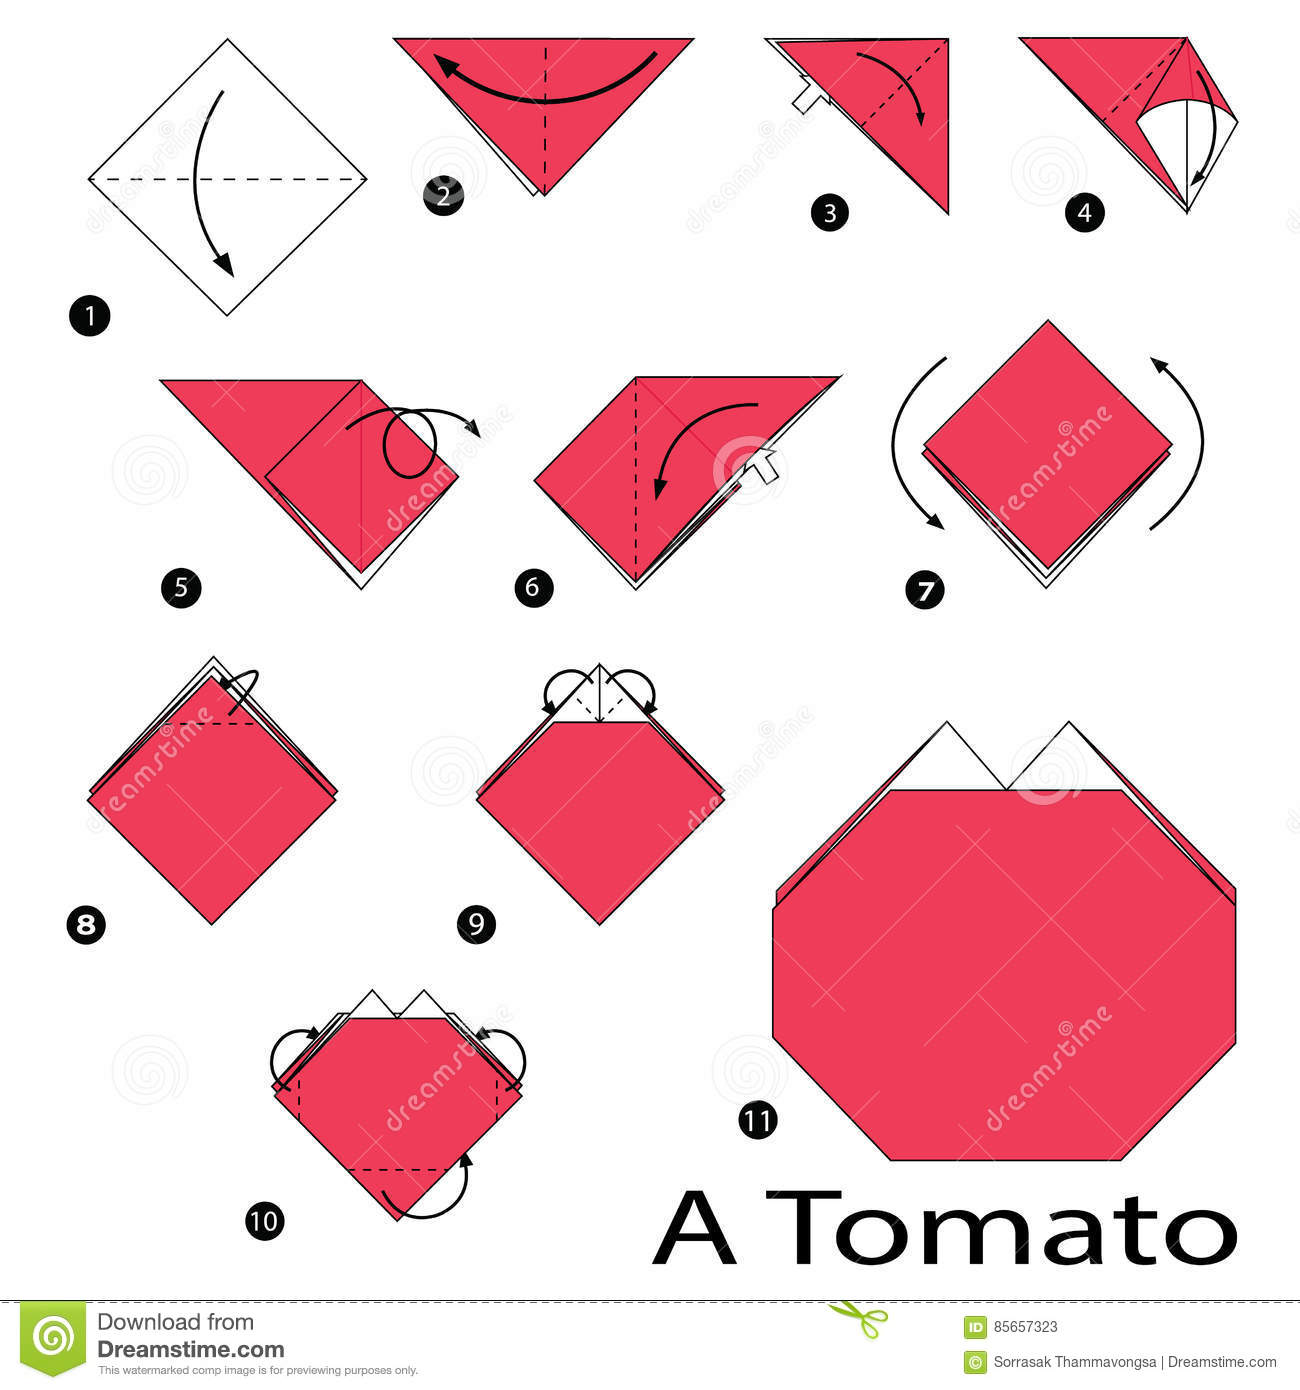 Step By Step Instructions How To Make Origami A Tomato